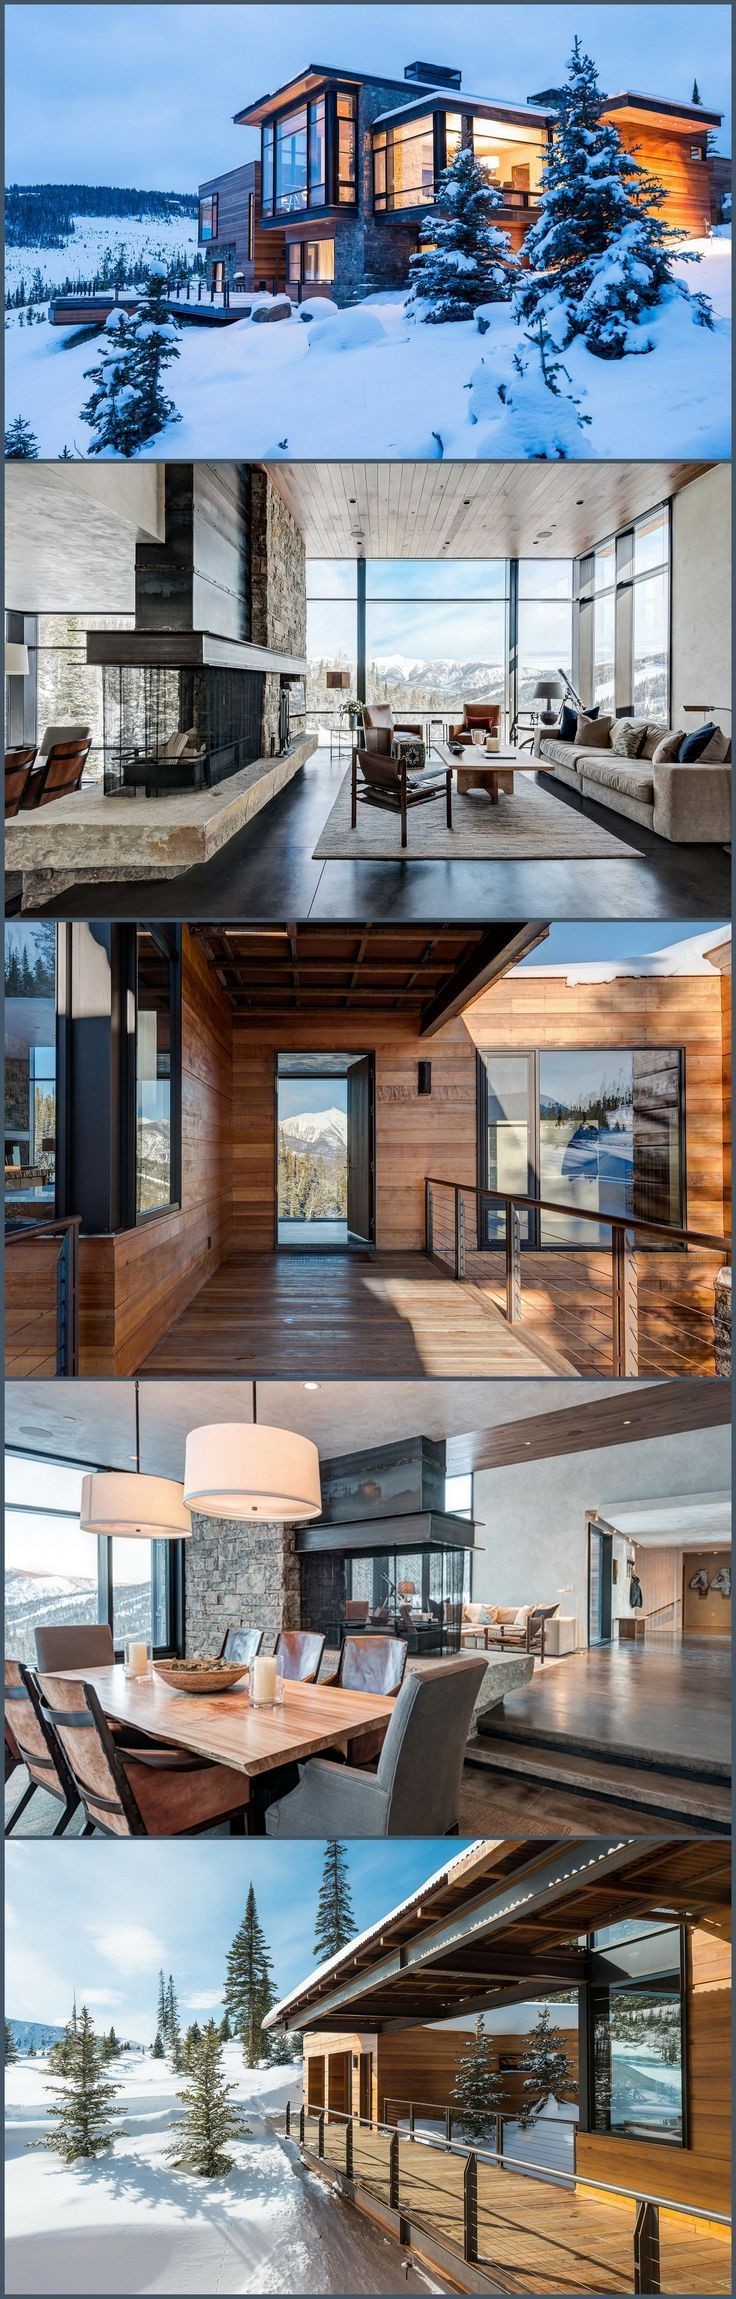 Dream house game room - Modern Montana Mountain Home